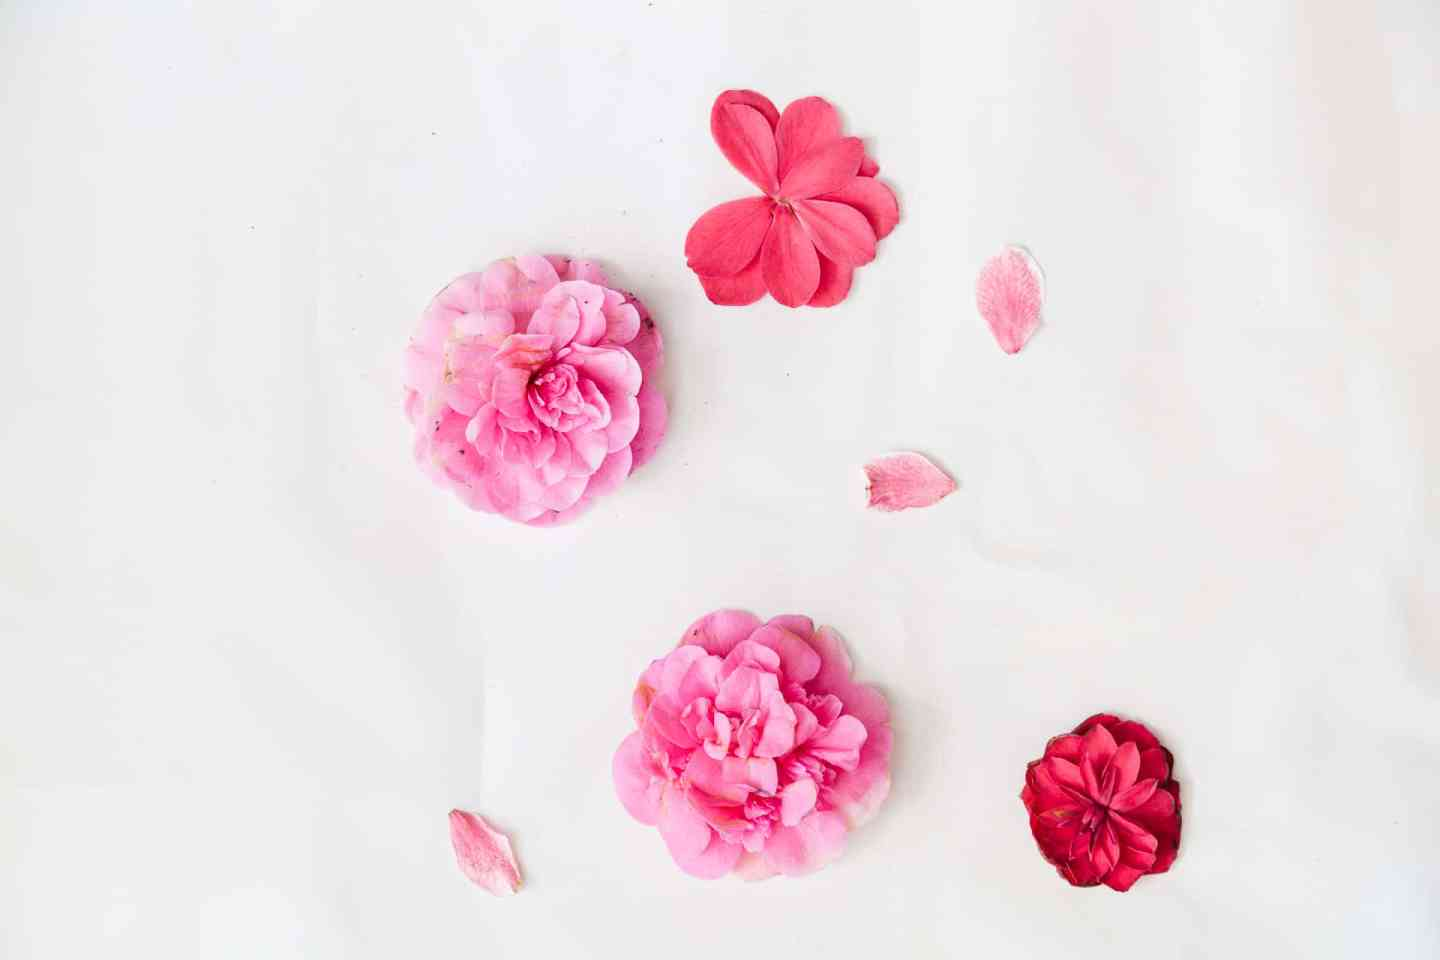 Camellia flower heads and rhododendron petals for making petal art